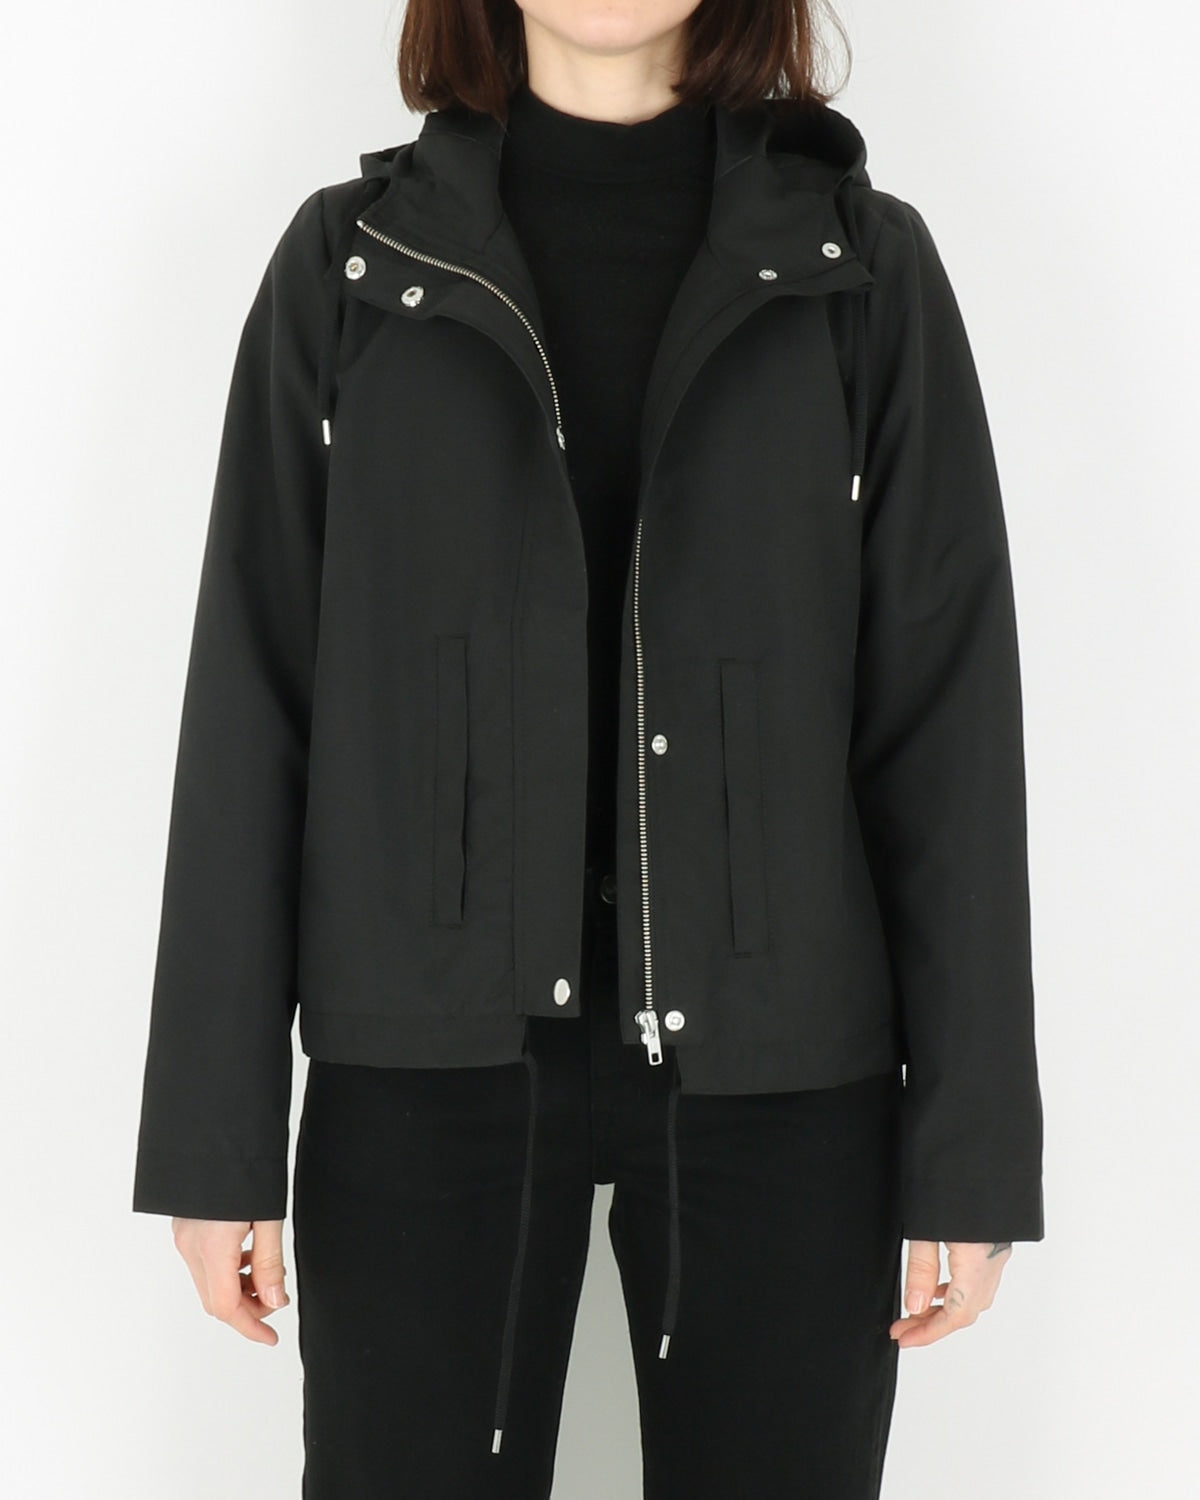 selfhood_jacket light 77082_black_view_1_4